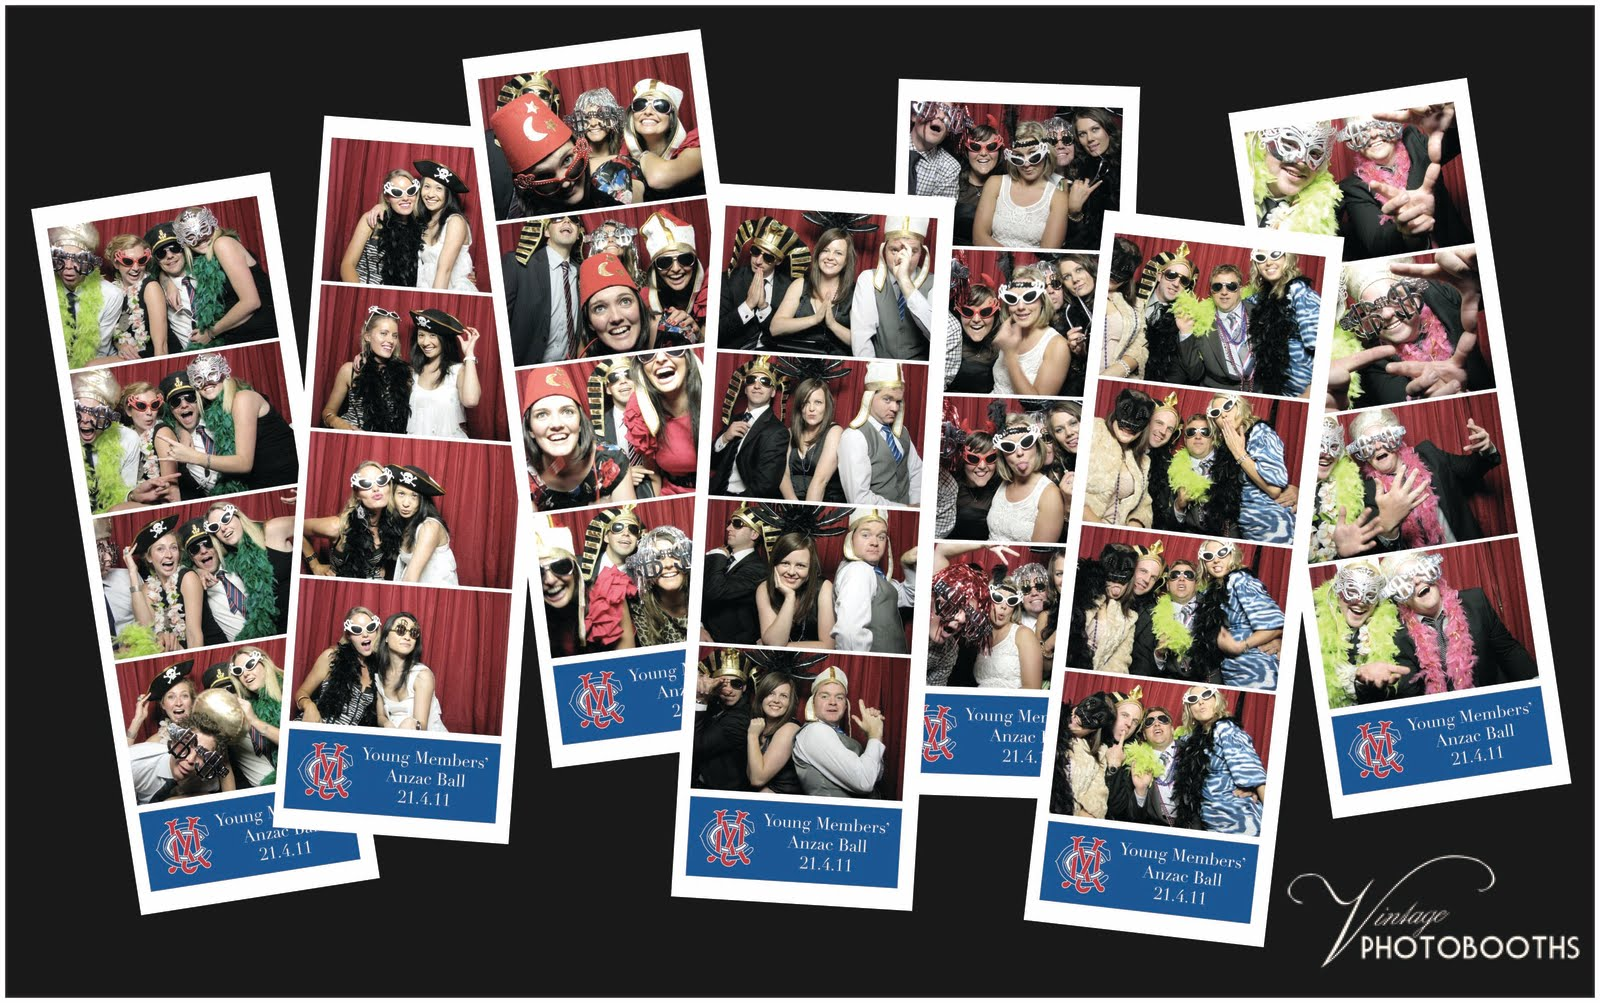 Vintage photobooths mcc young members anzac ball a fabulous night was had by all the mcc young members for the annual anzac ball in the members dining room which has a great view over the g the queue for dzzzfo